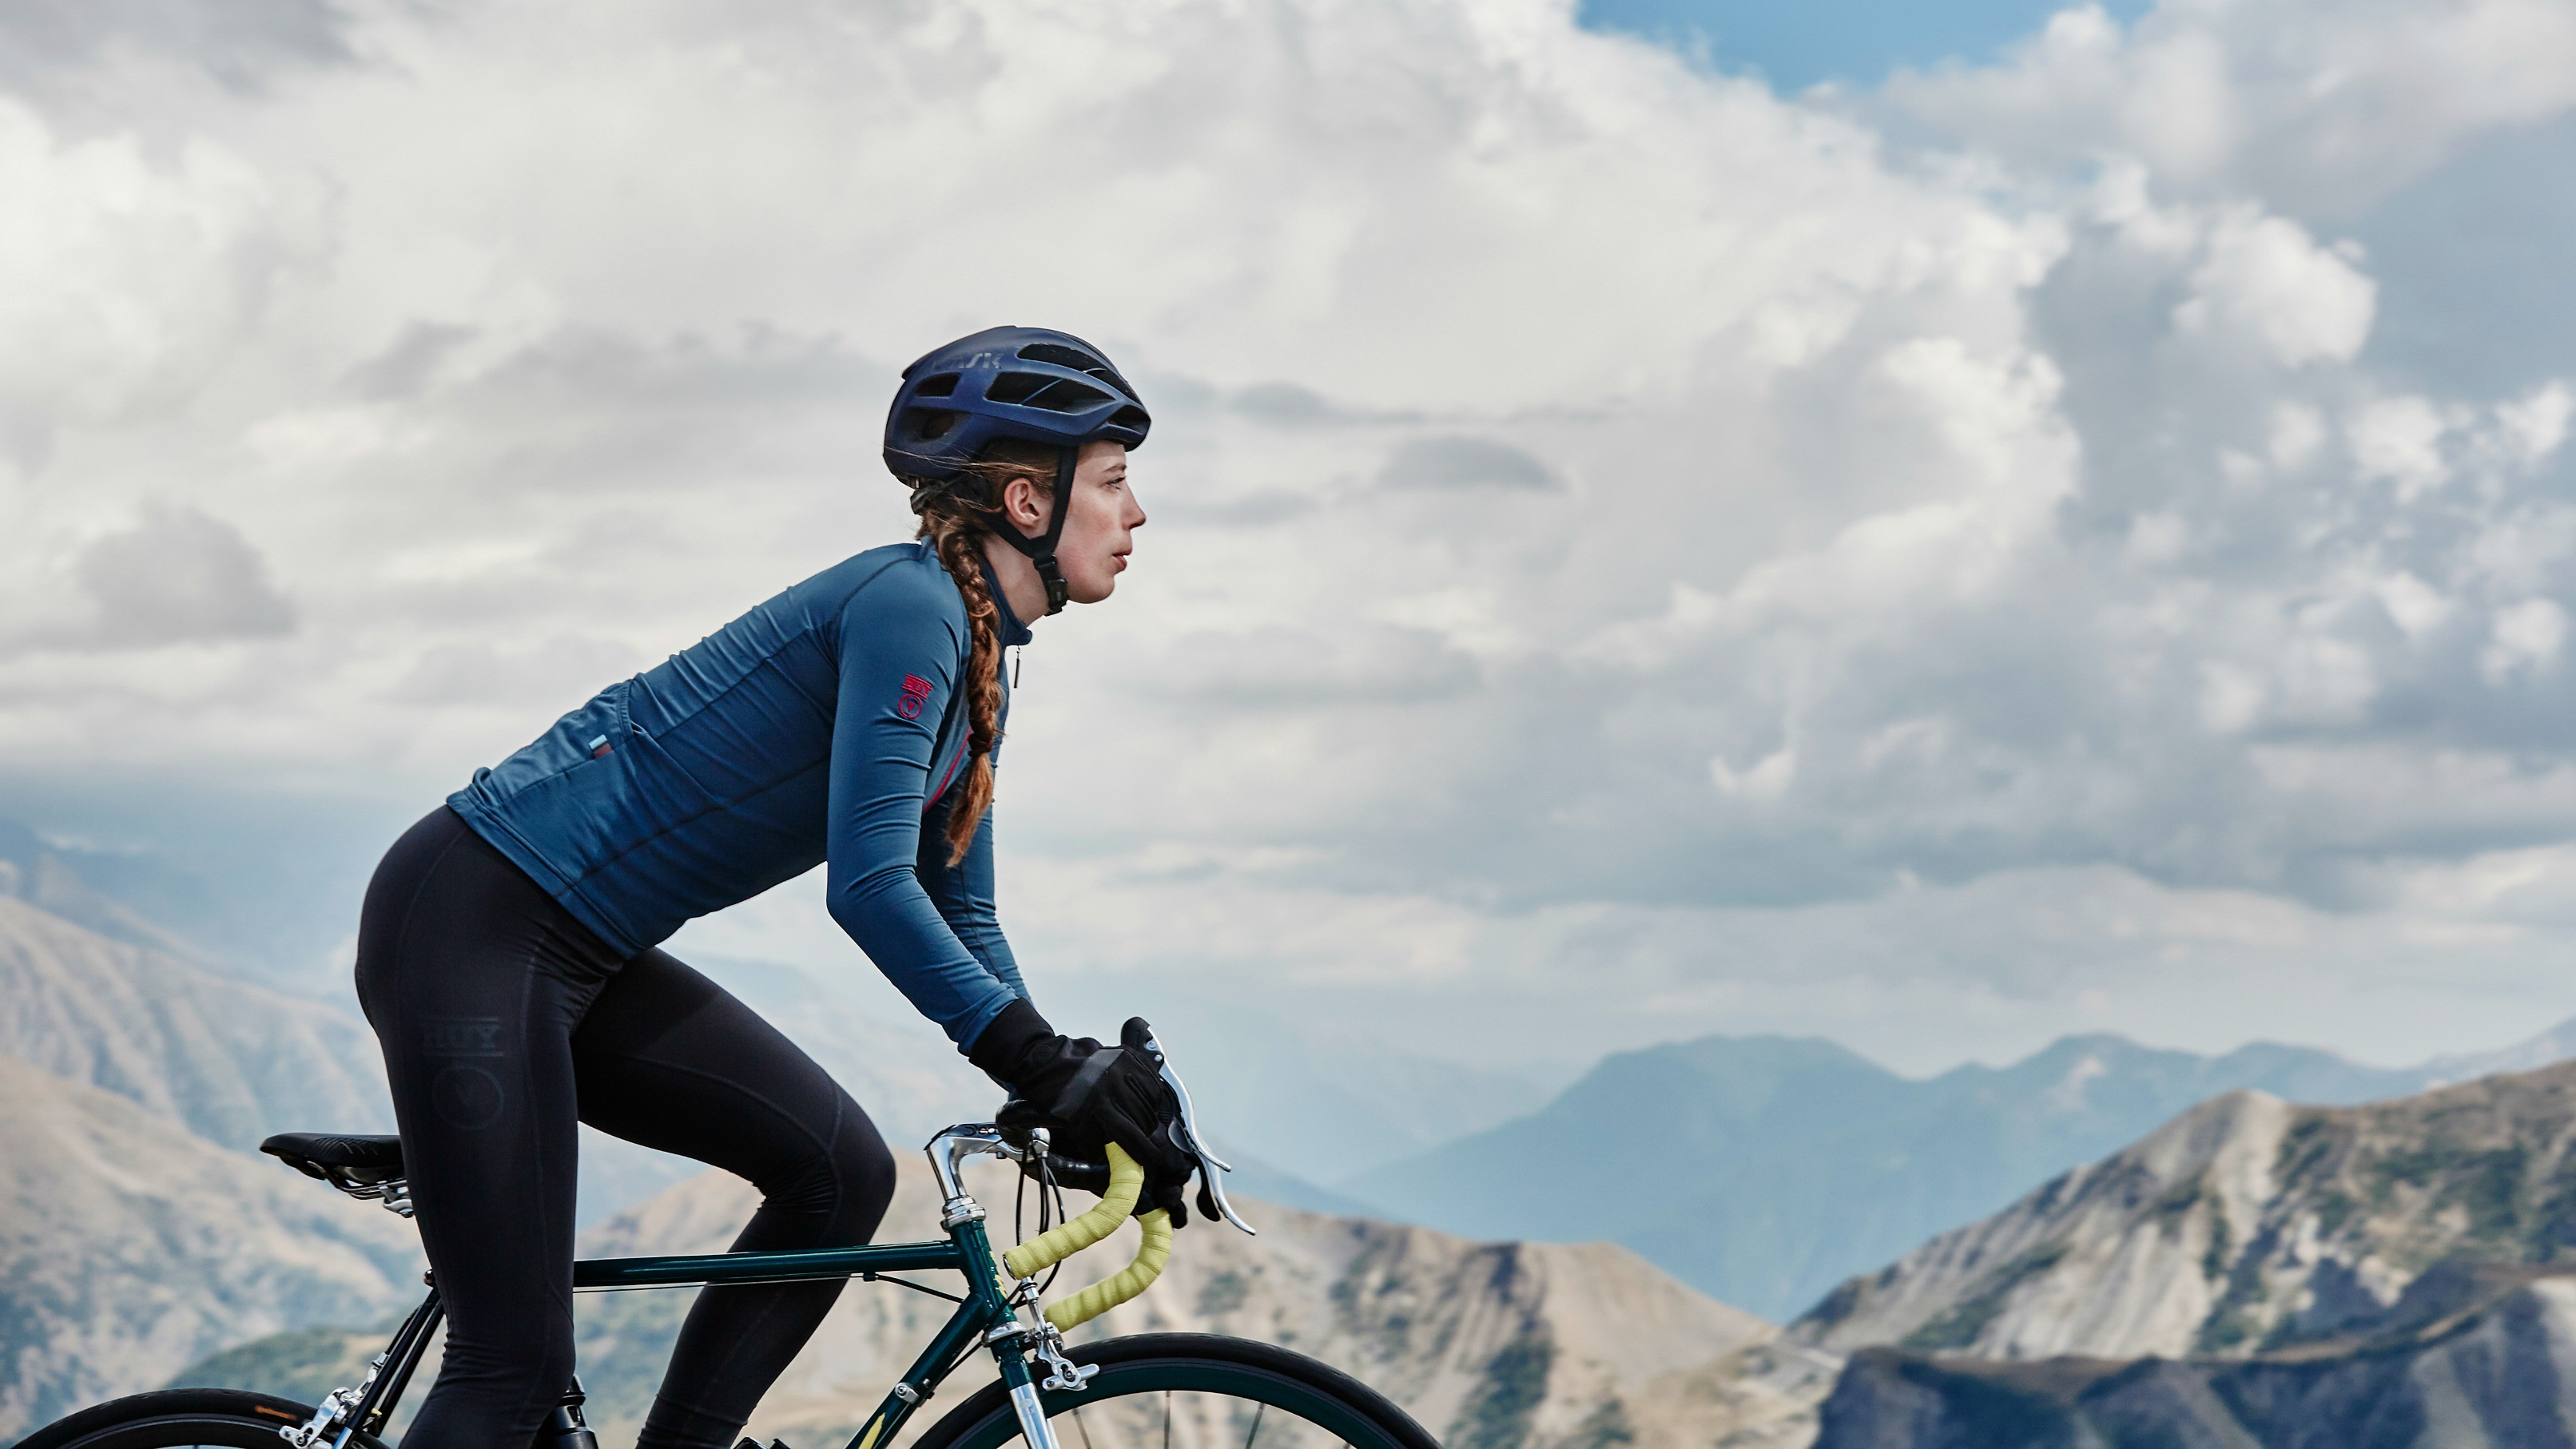 The long-sleeved Roubaix jersey is made from a soft, warm fleece for extra warmth